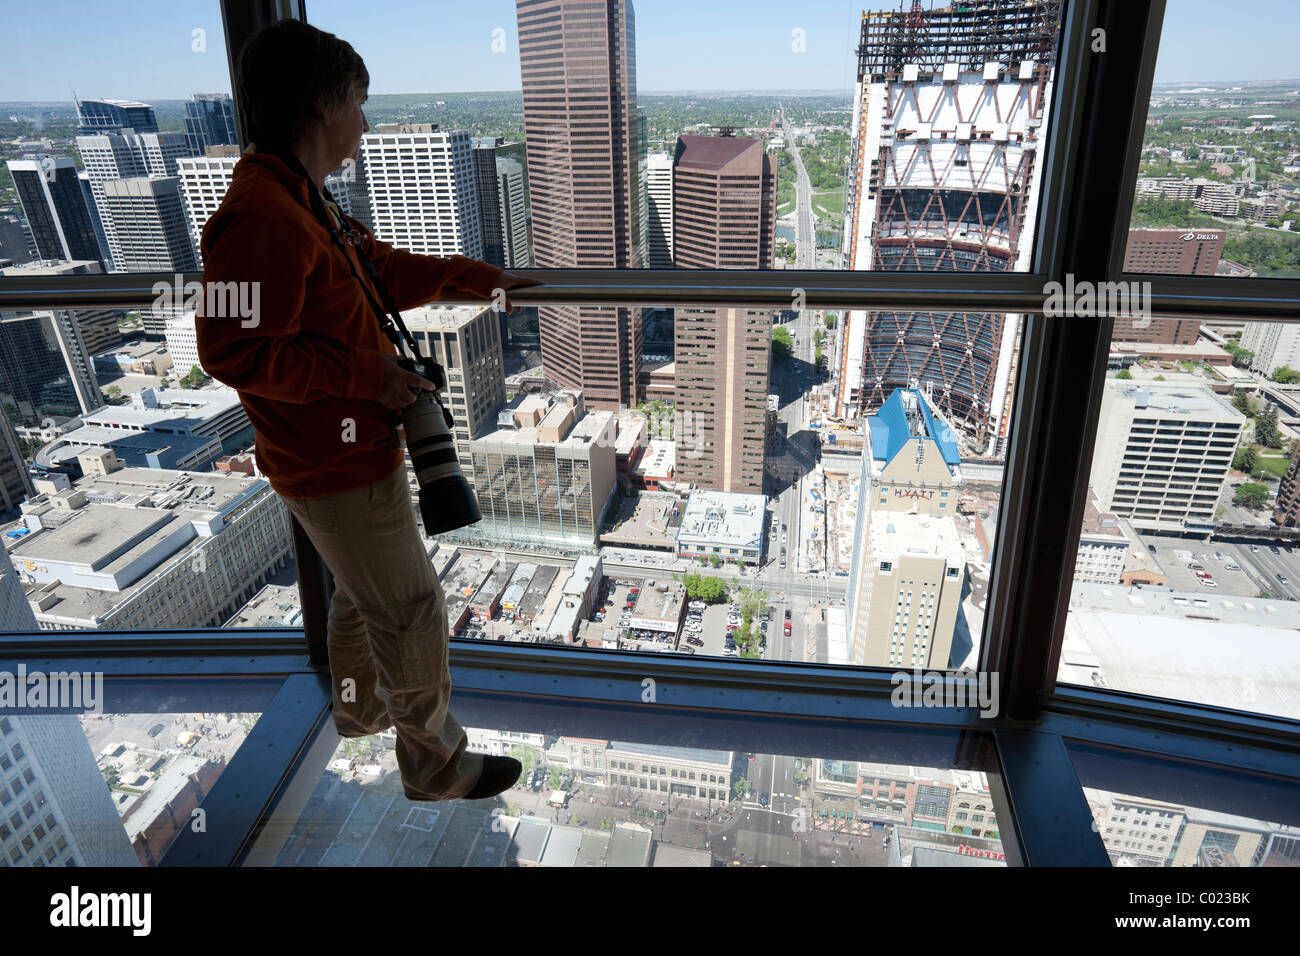 Female Standing On The Glass Floor Of The Observation Deck In The